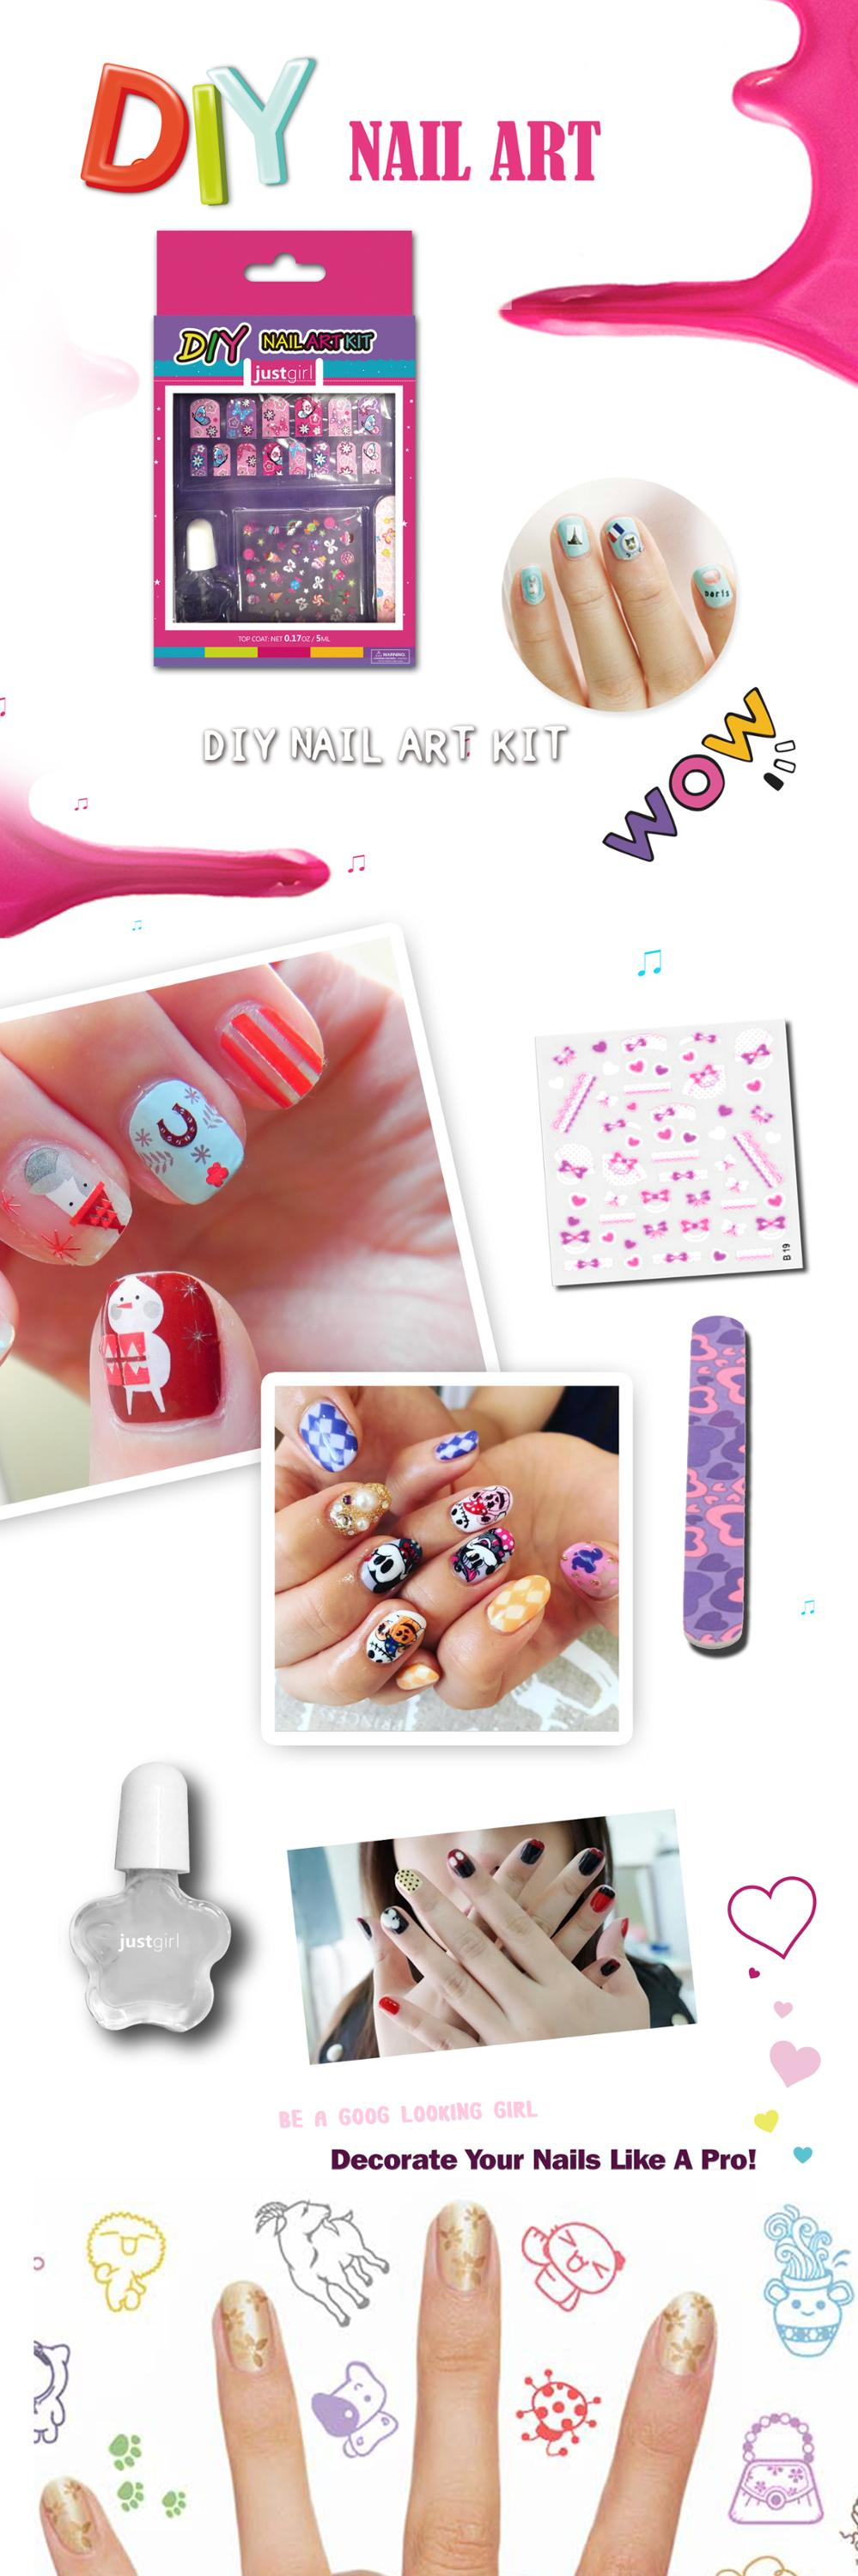 Diy Your Nails Easy Application Safe Nail Art Decoration Kit Buy